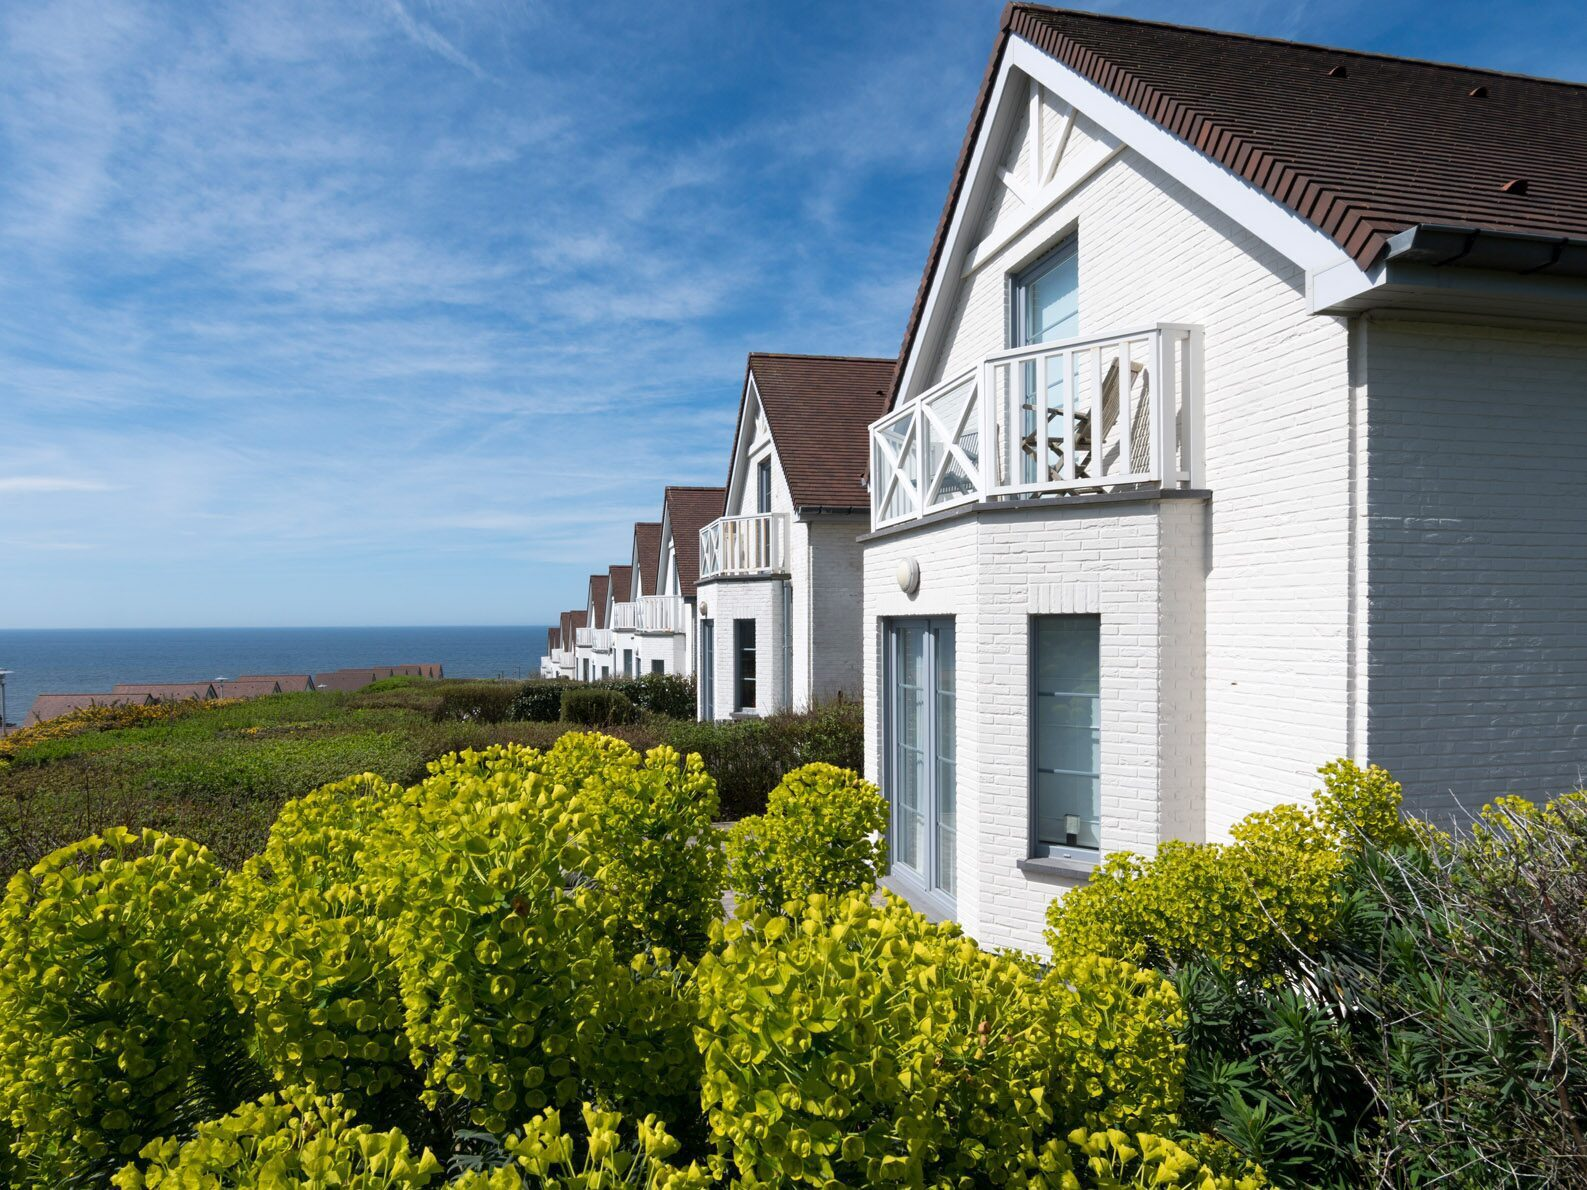 Houses in Holiday Suites Equihen-Plage